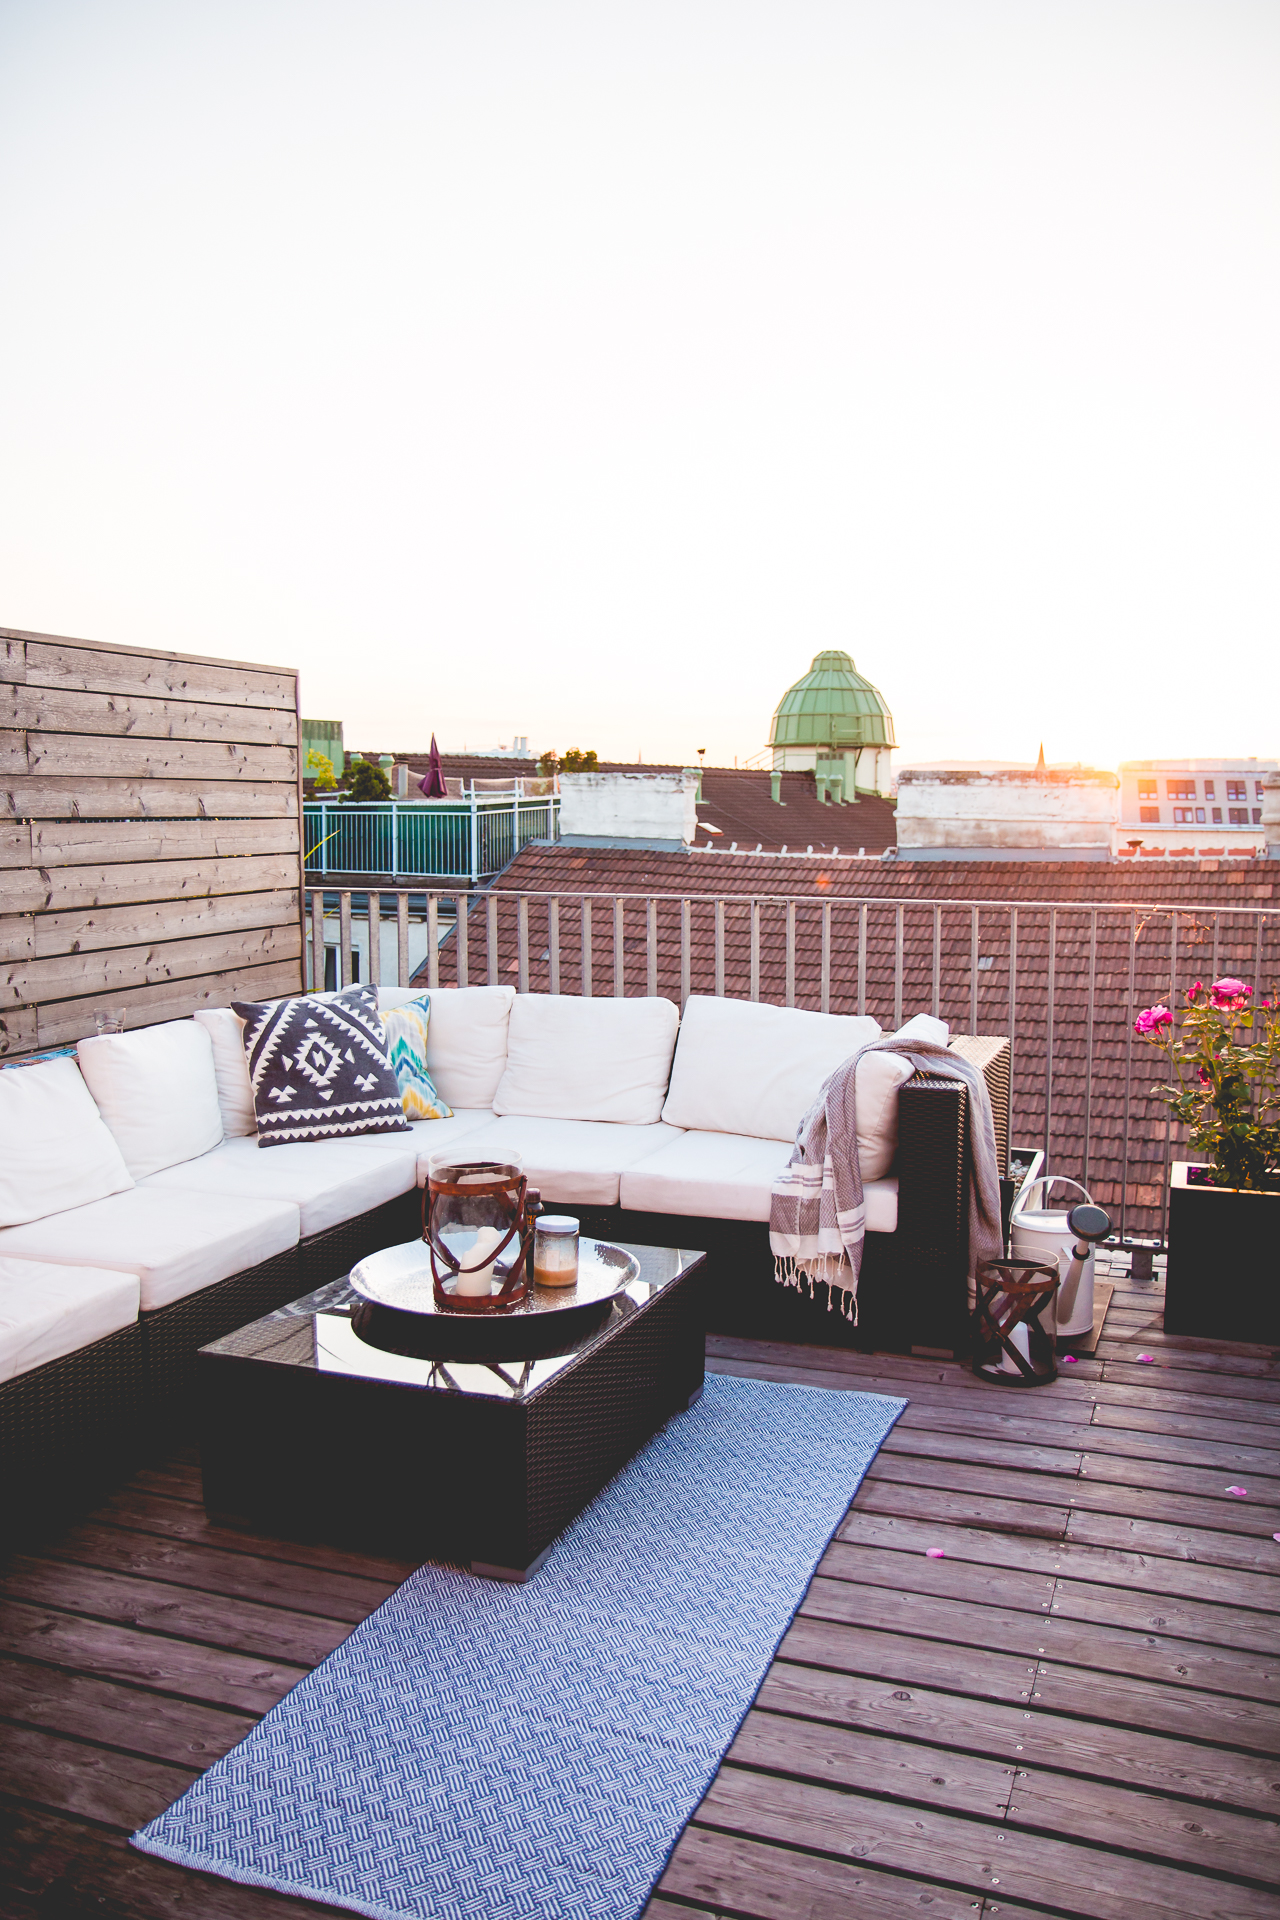 Outdoor Living - Rooftop Terrace Inspiration | Love Daily Dose